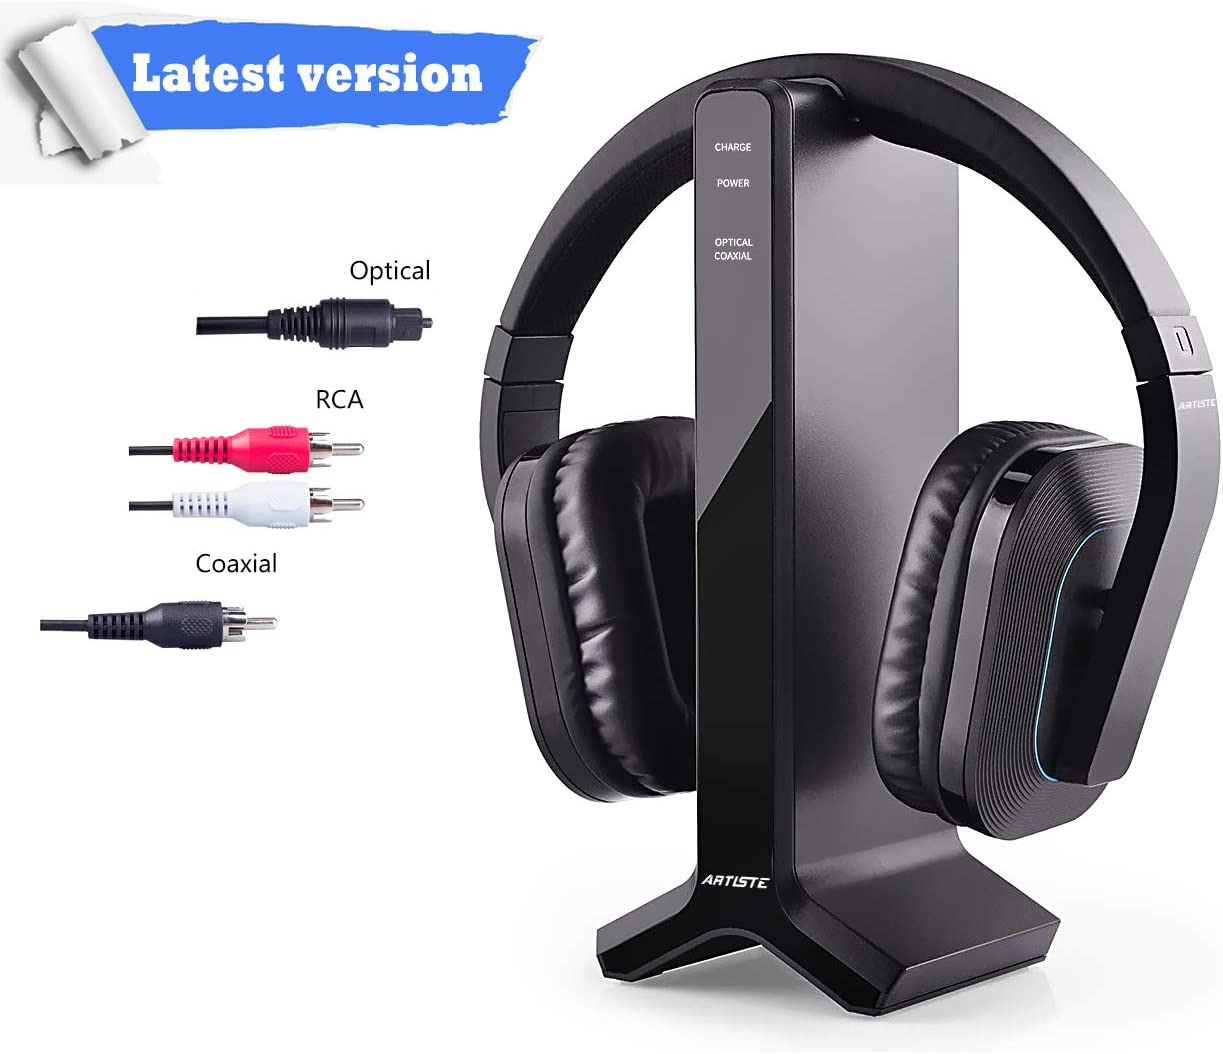 2.4g RF Wireless Headphones for TV Watching Listening, ARTISTE D1 Rechargeable Wireless Headset with Charging Dock Transmitter, Optical Fiber Output, Ideal Headset for The Seniors 100ft Range